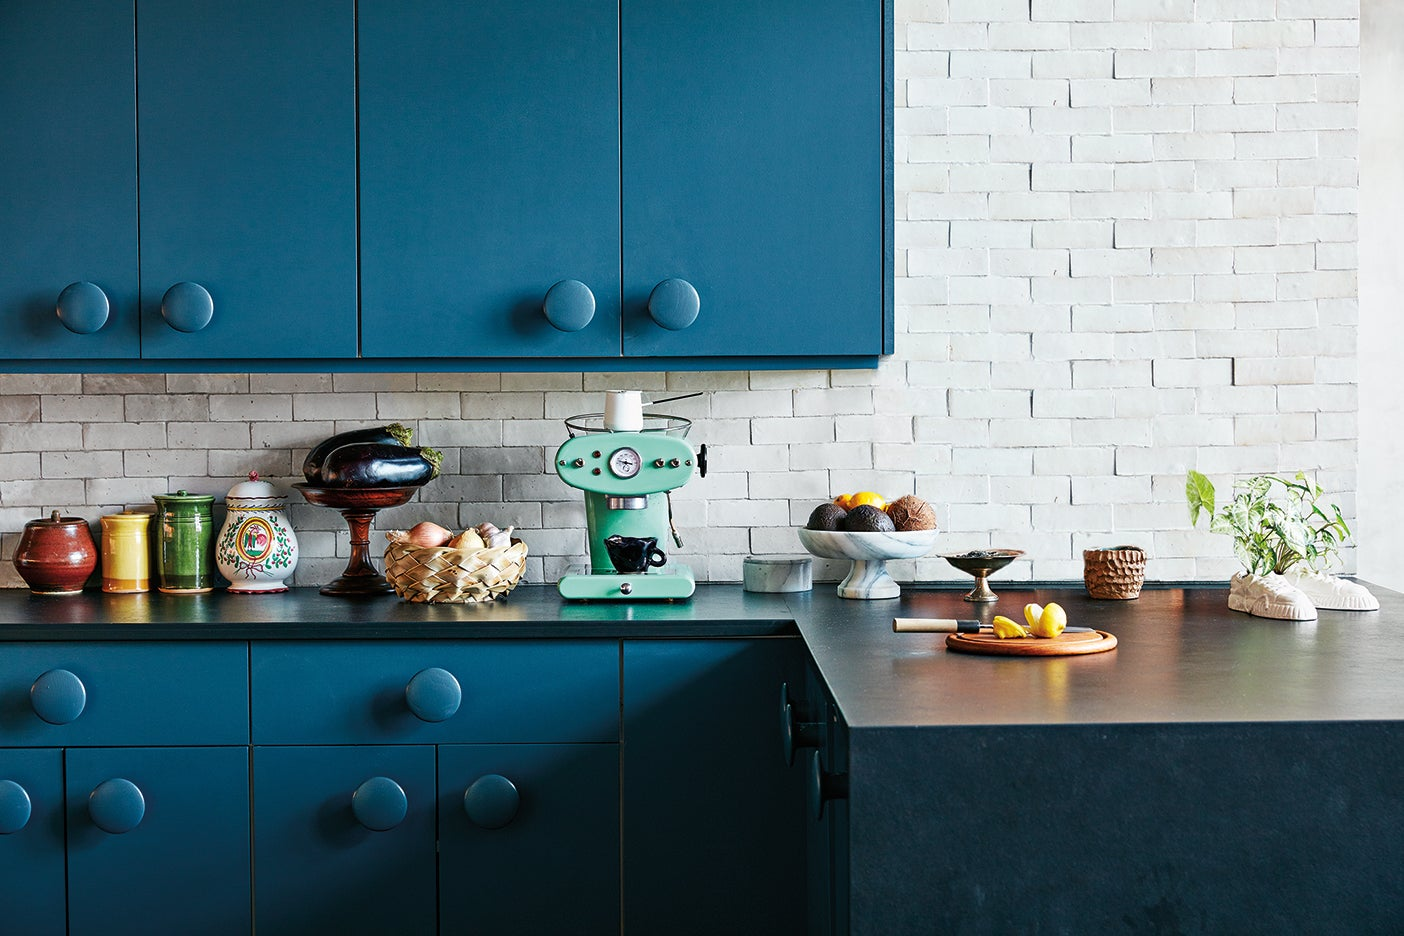 navy blue cabinets with round knobs